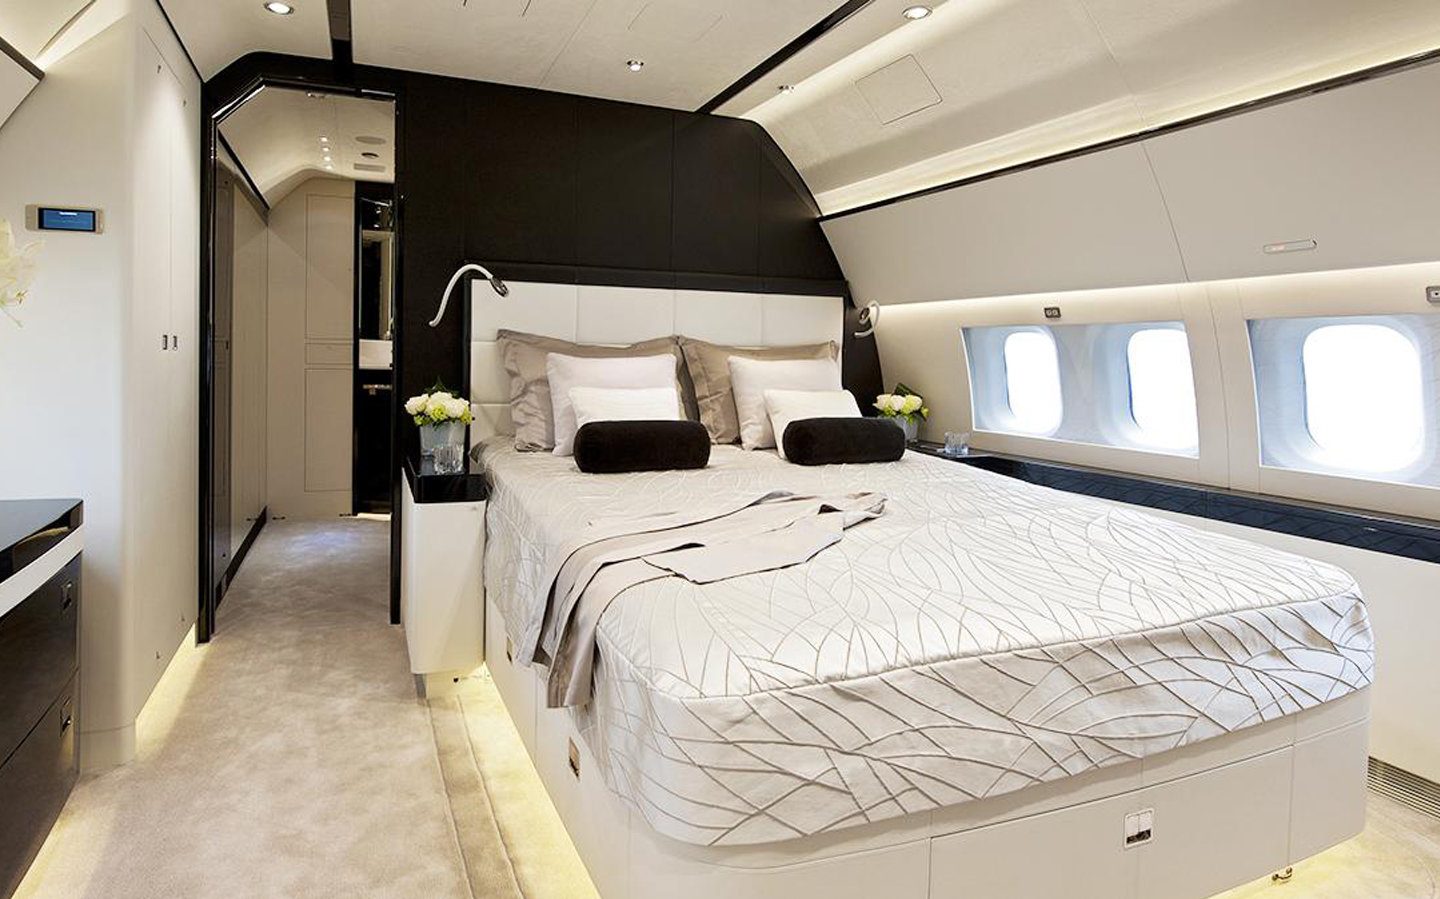 Jet Airliners with Beds